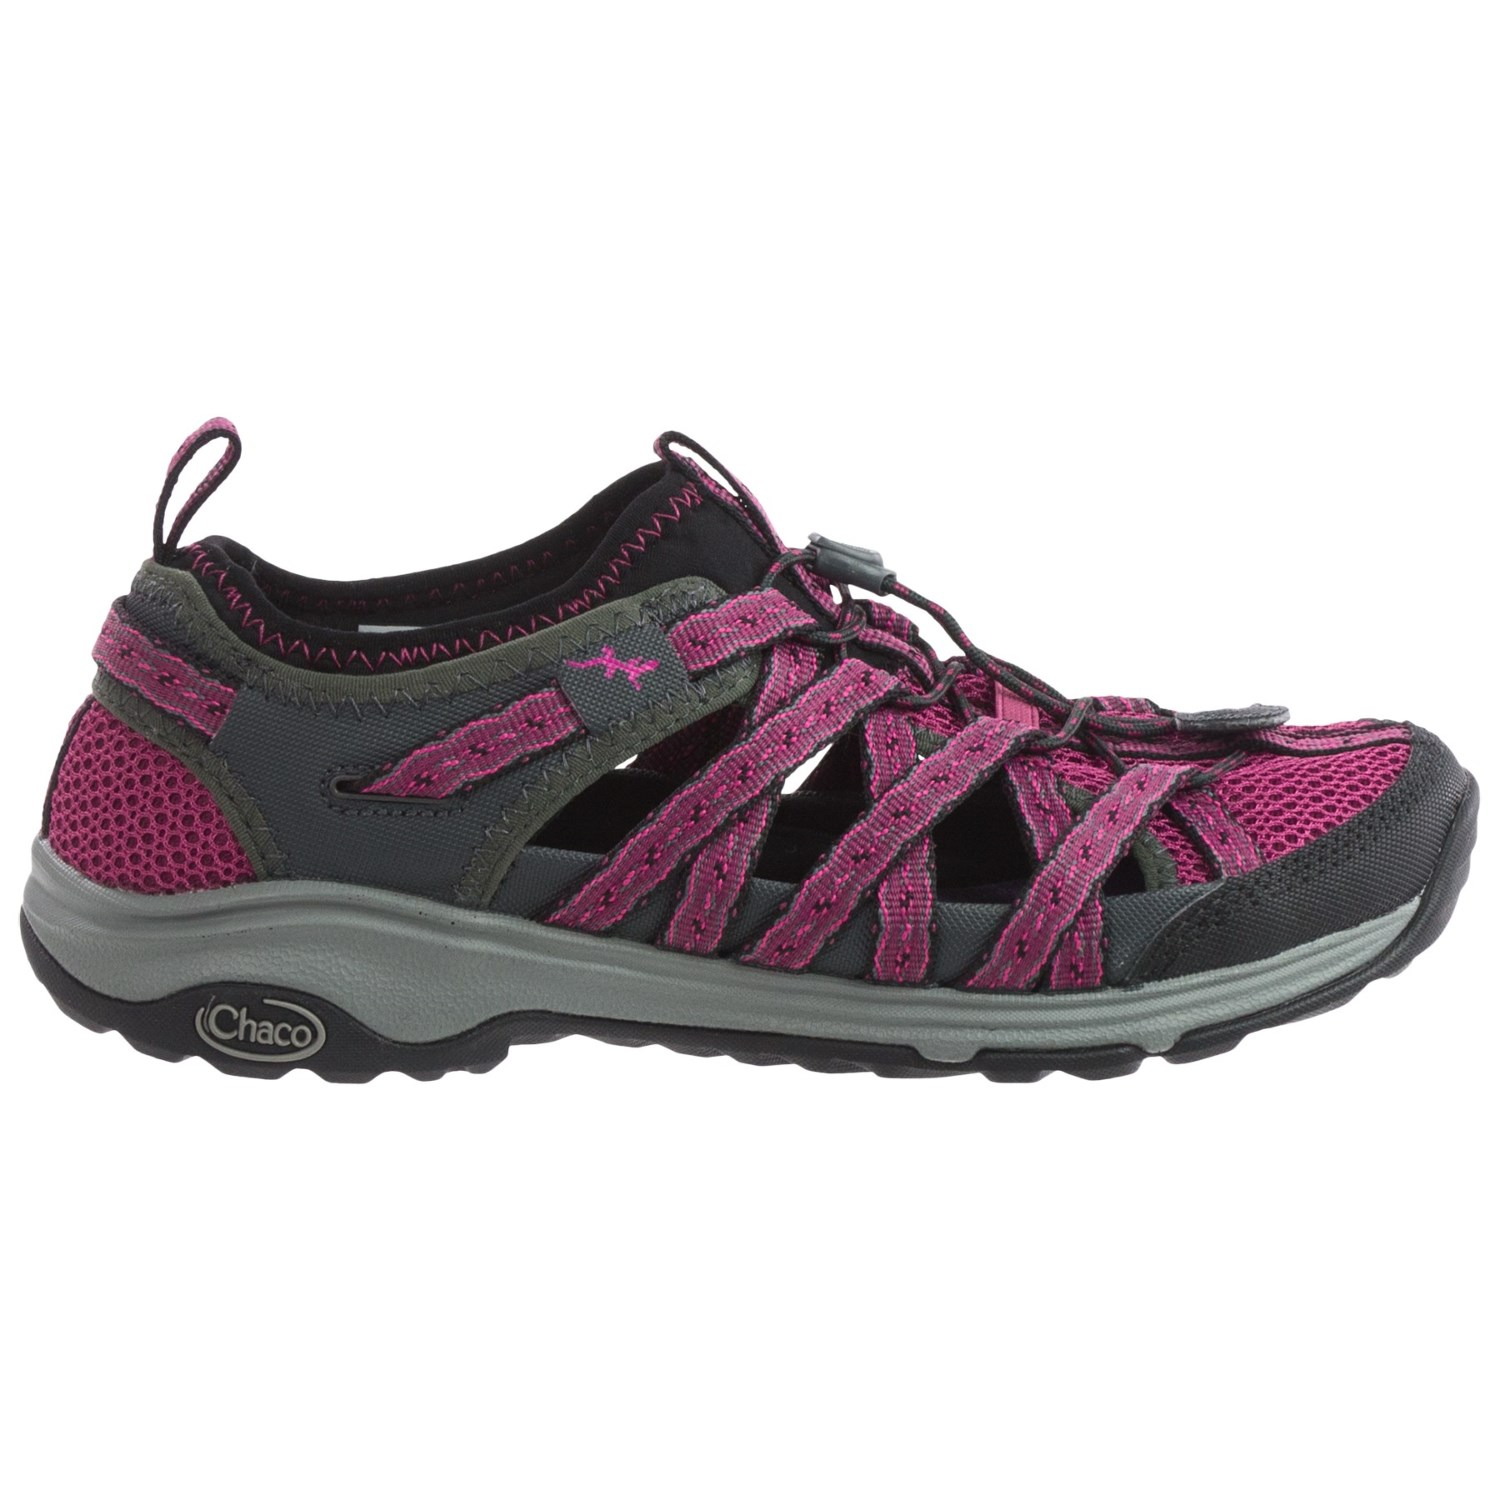 Chaco OutCross Evo 1 Water Shoes (For Women) - Save 45%